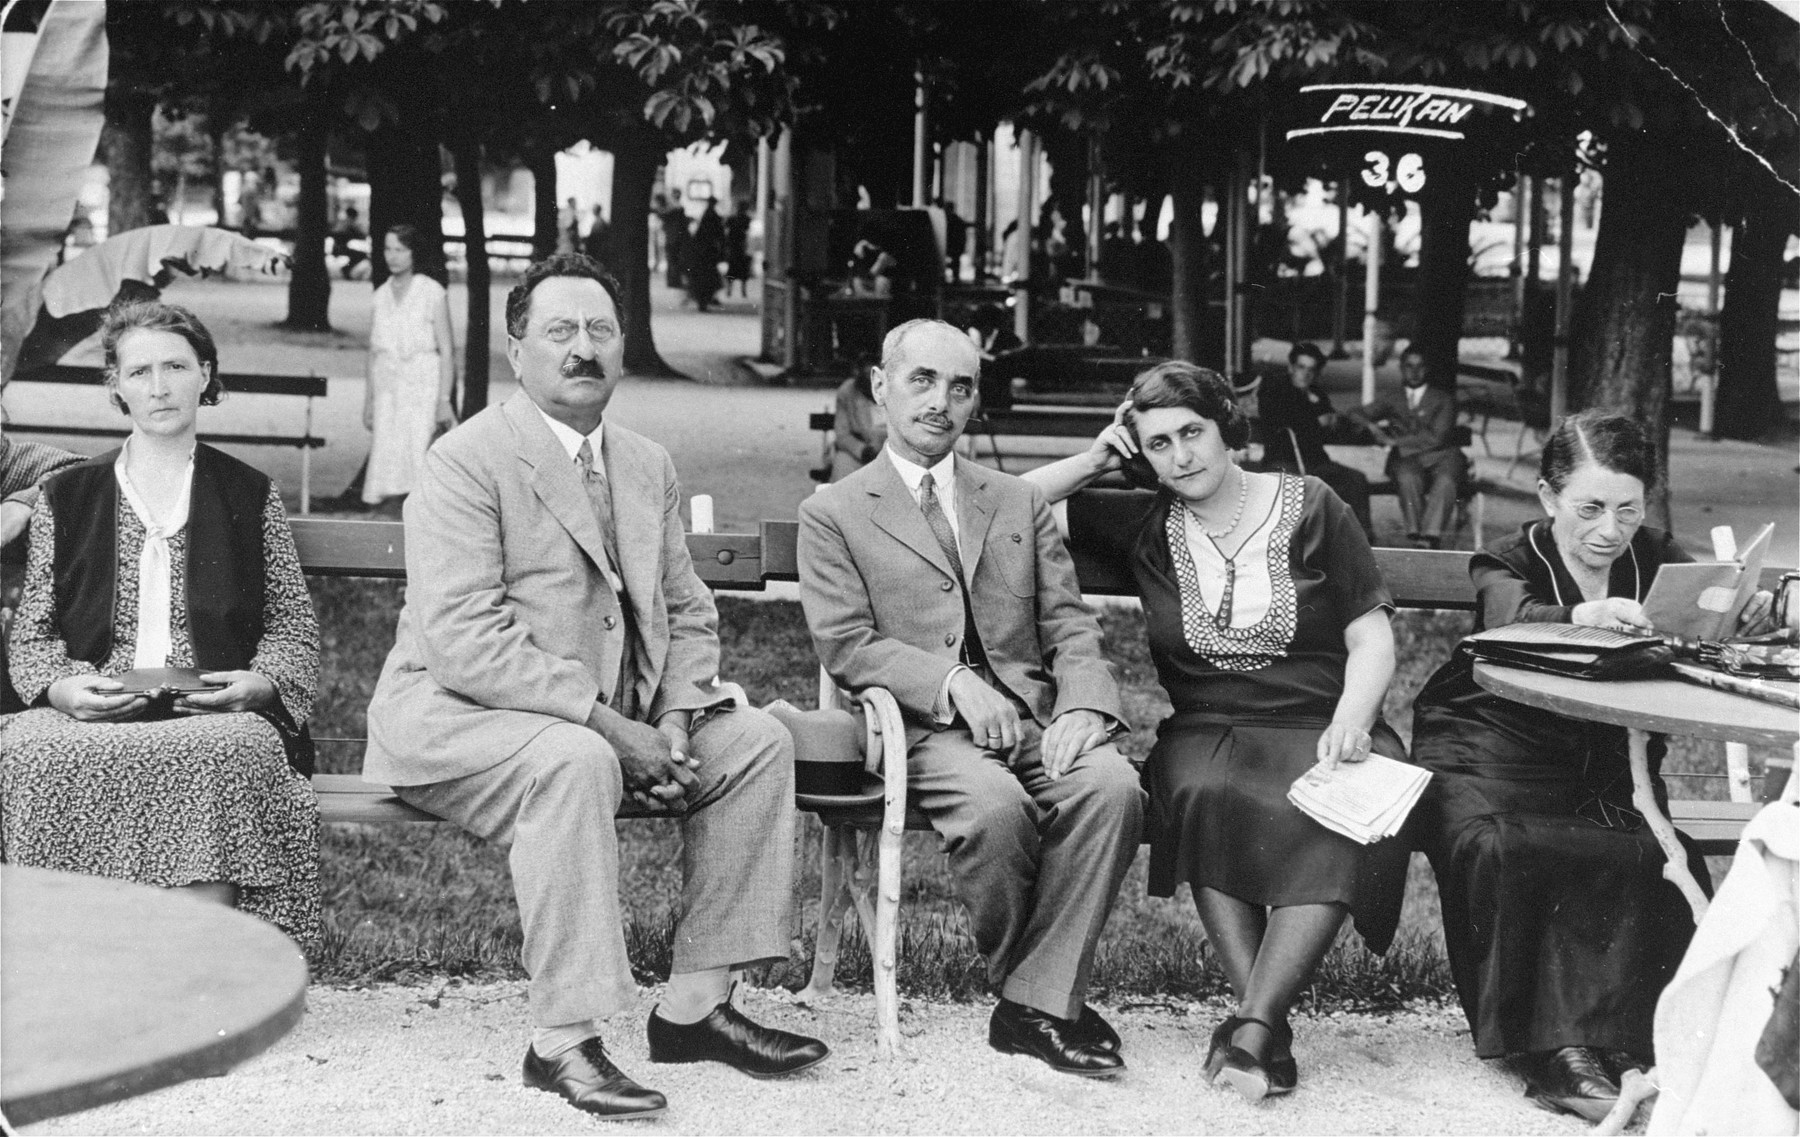 Members of the Klein/Kupfermann family sit in a park at a vacation resort in Croatia.